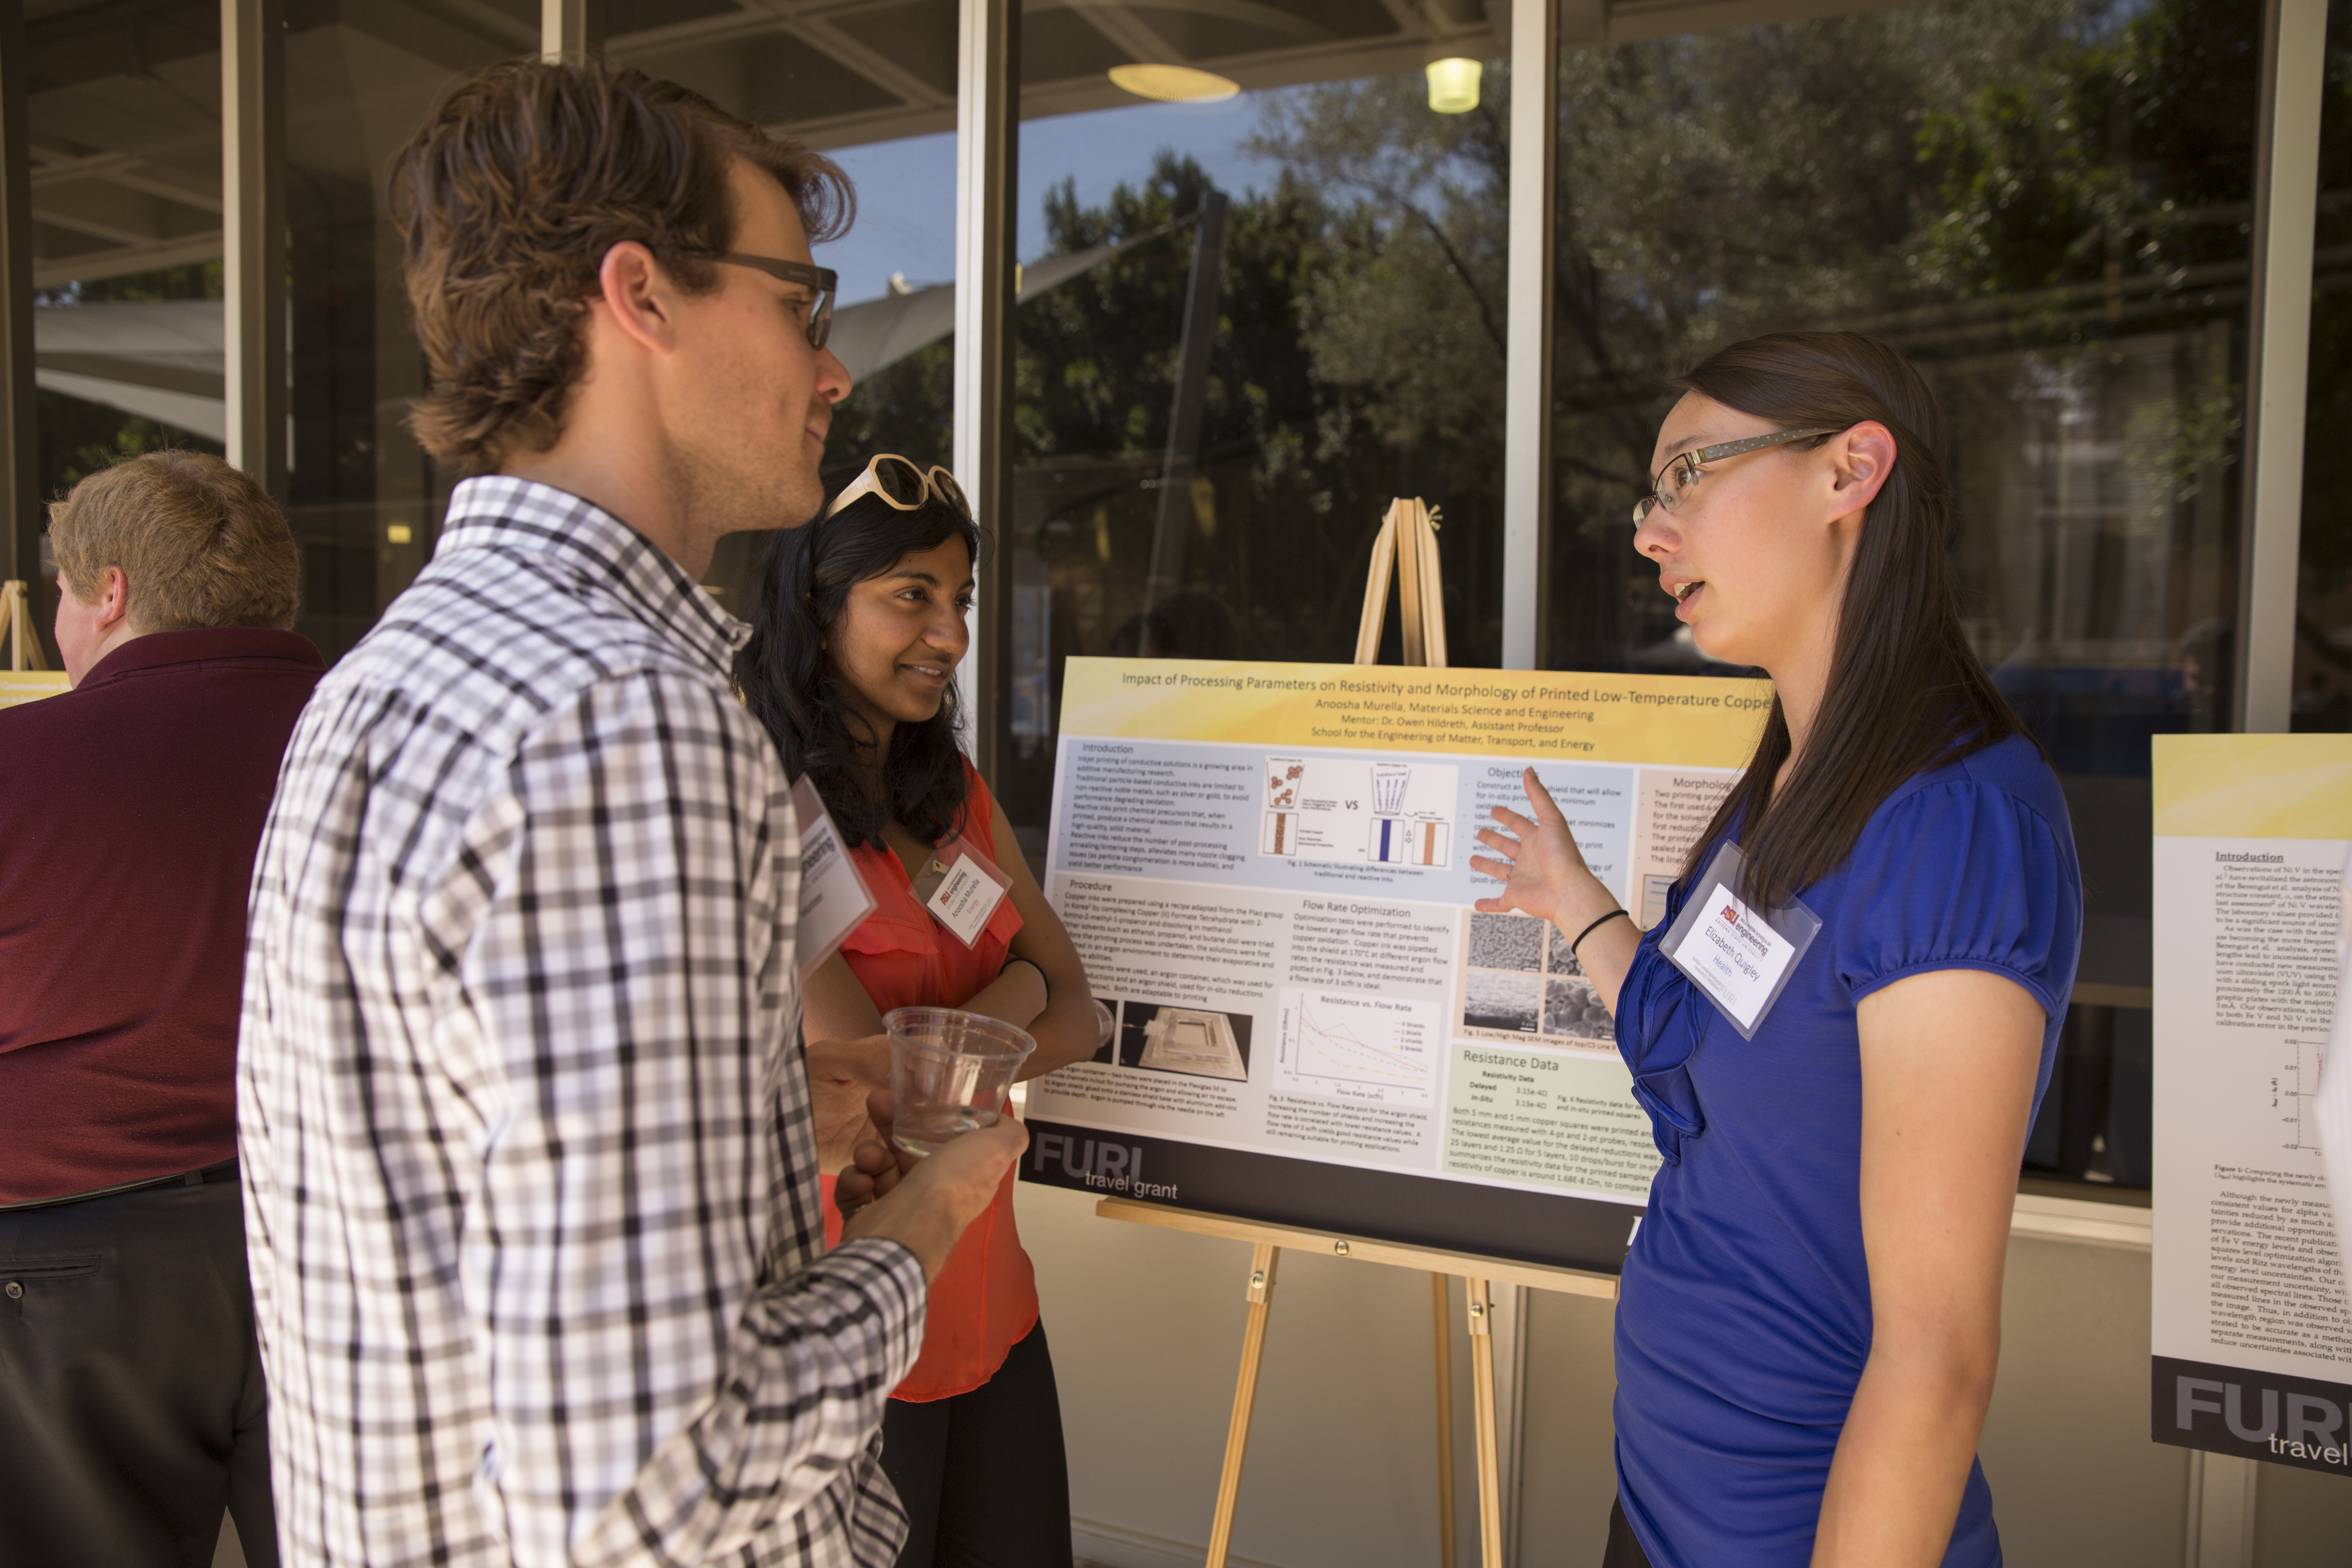 Students discuss their research at the FURI Symposium